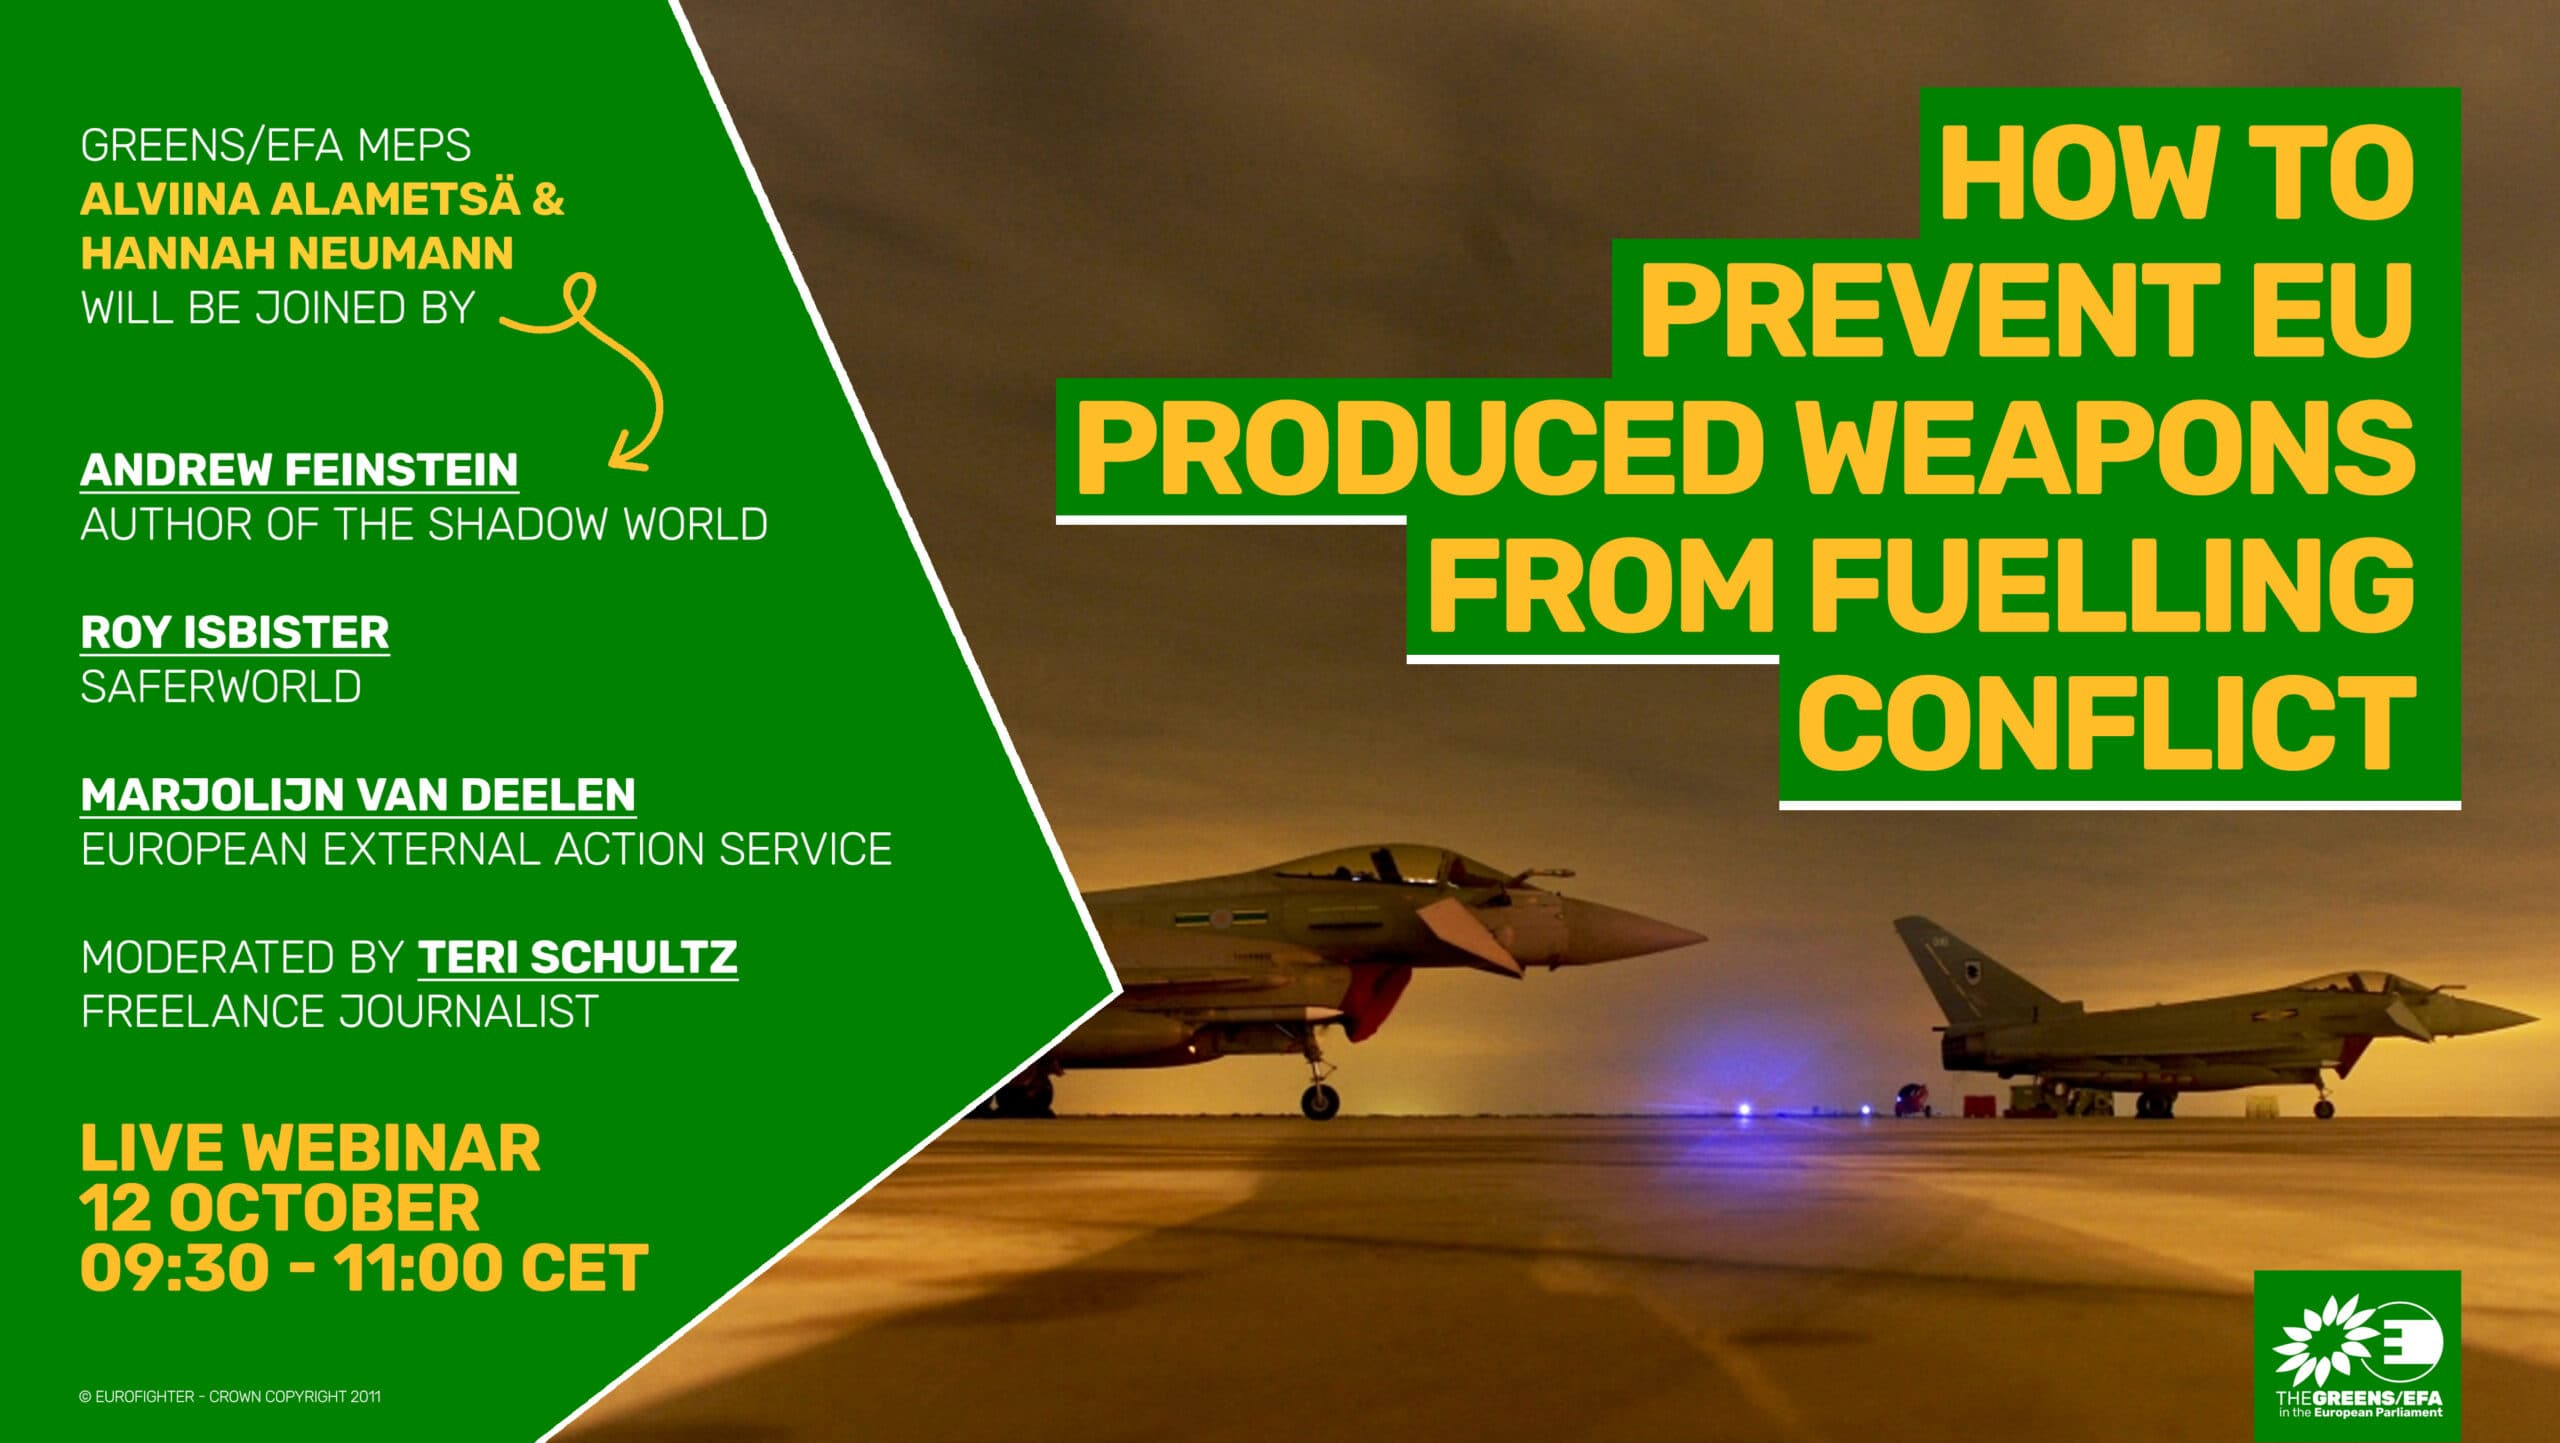 Campaign launch: How to prevent EU produced weapons from fuelling conflict